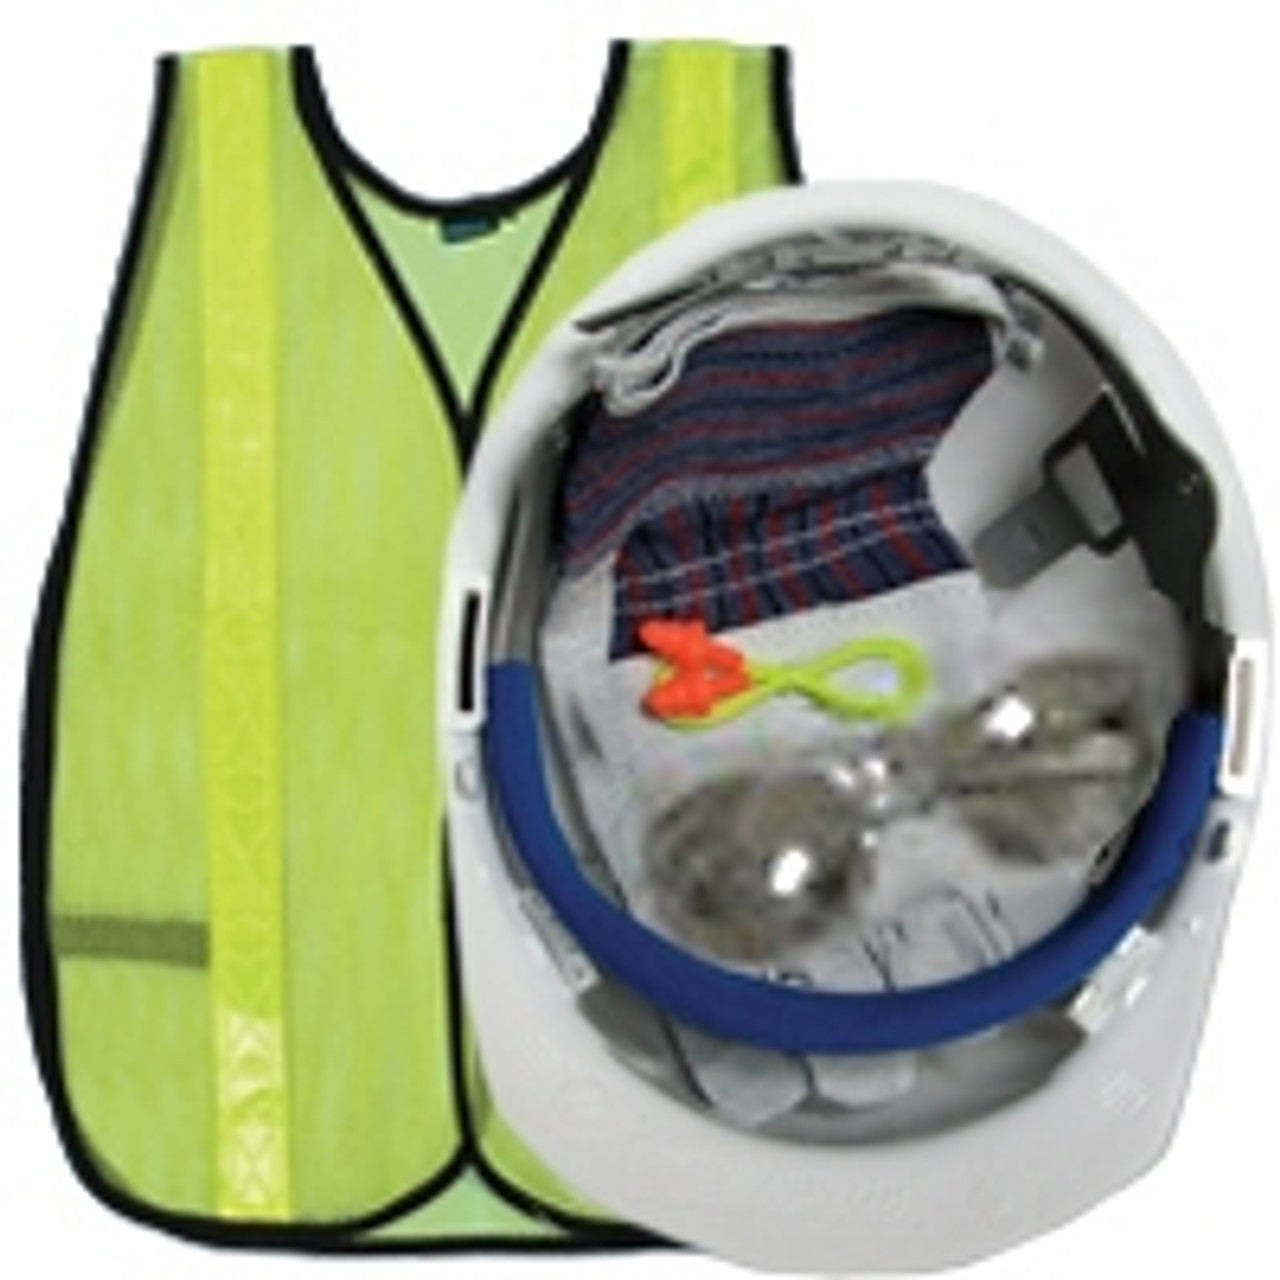 New Hire Kit with White Hard Hat / Lime Vest S18R - ERB 18526